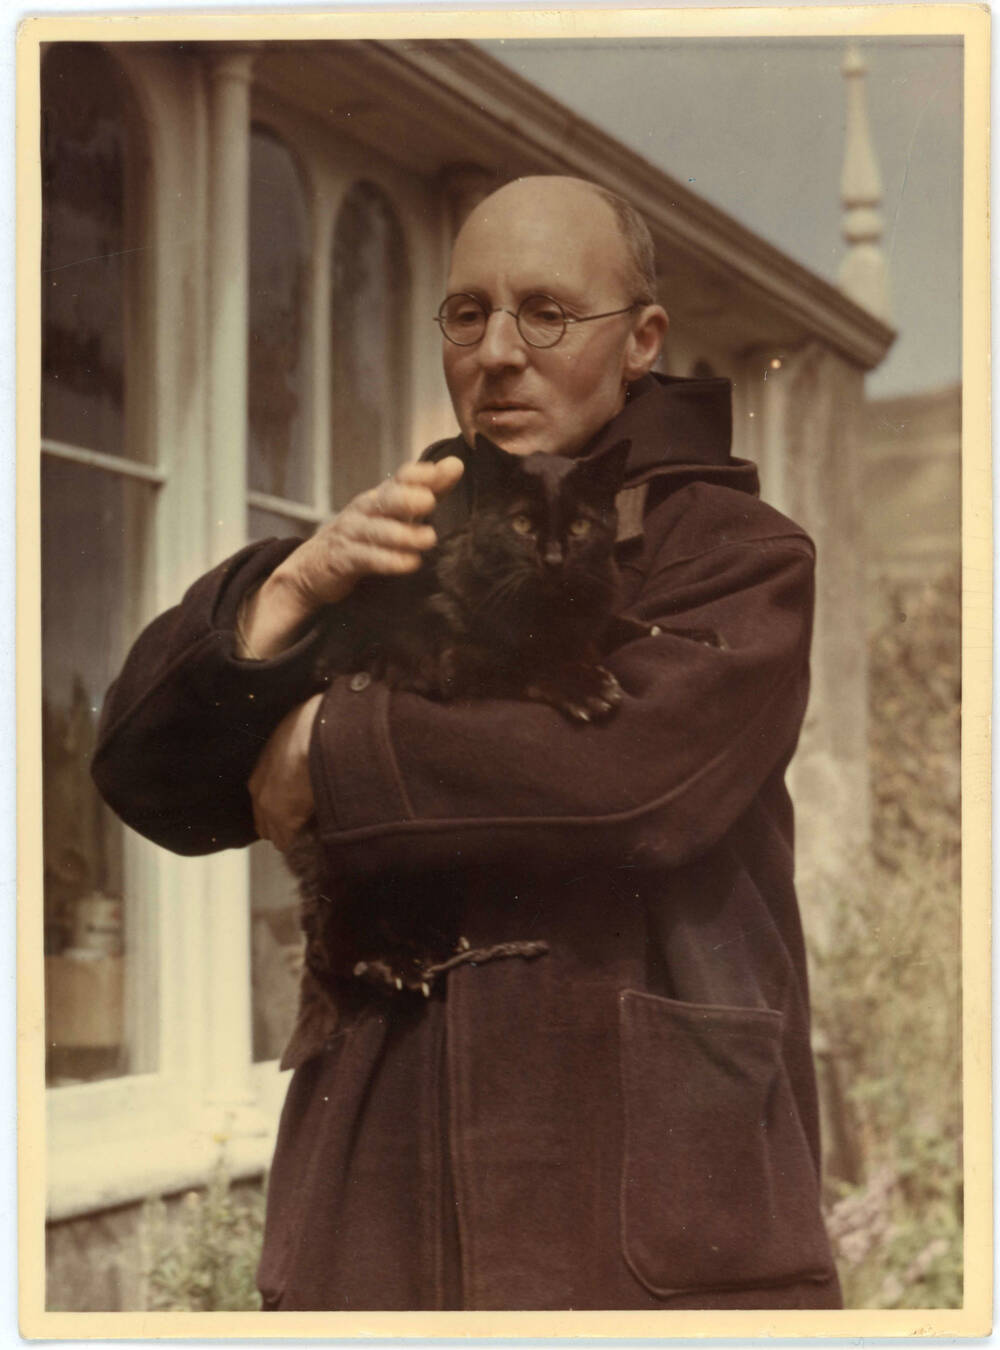 A colour photograph of a priest holding a black cat with green eyes. The priest is bald and wears glasses and a black coat.